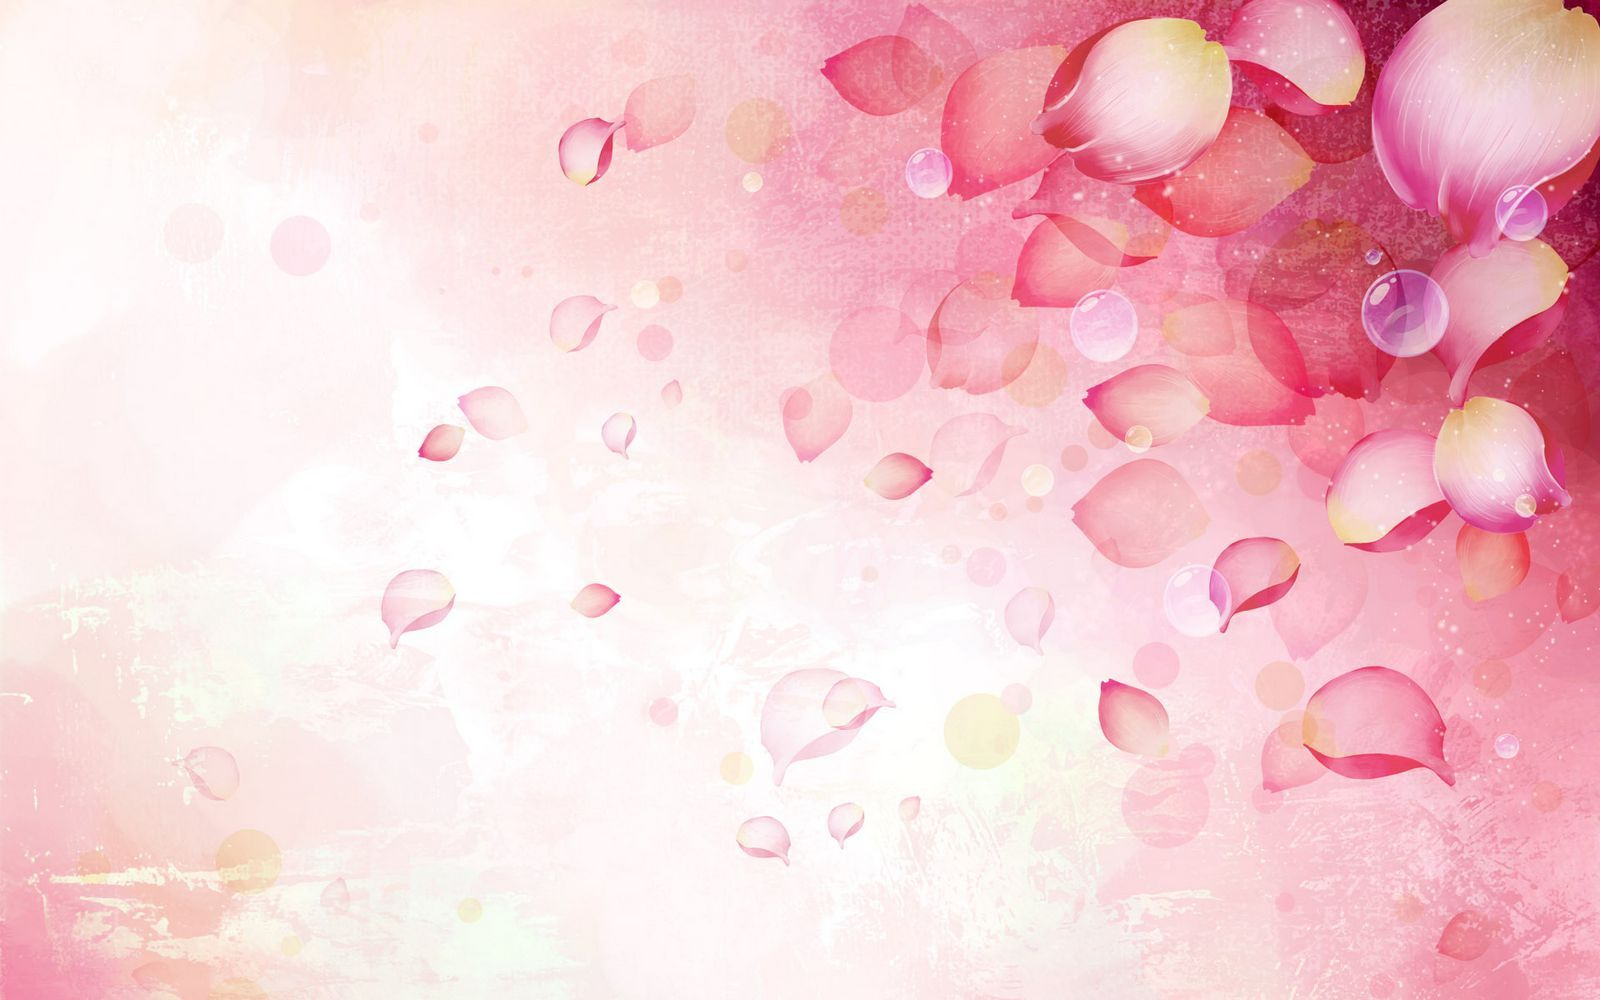 Beautifully Illustrated Vector Flower Backgrounds 1600x1000